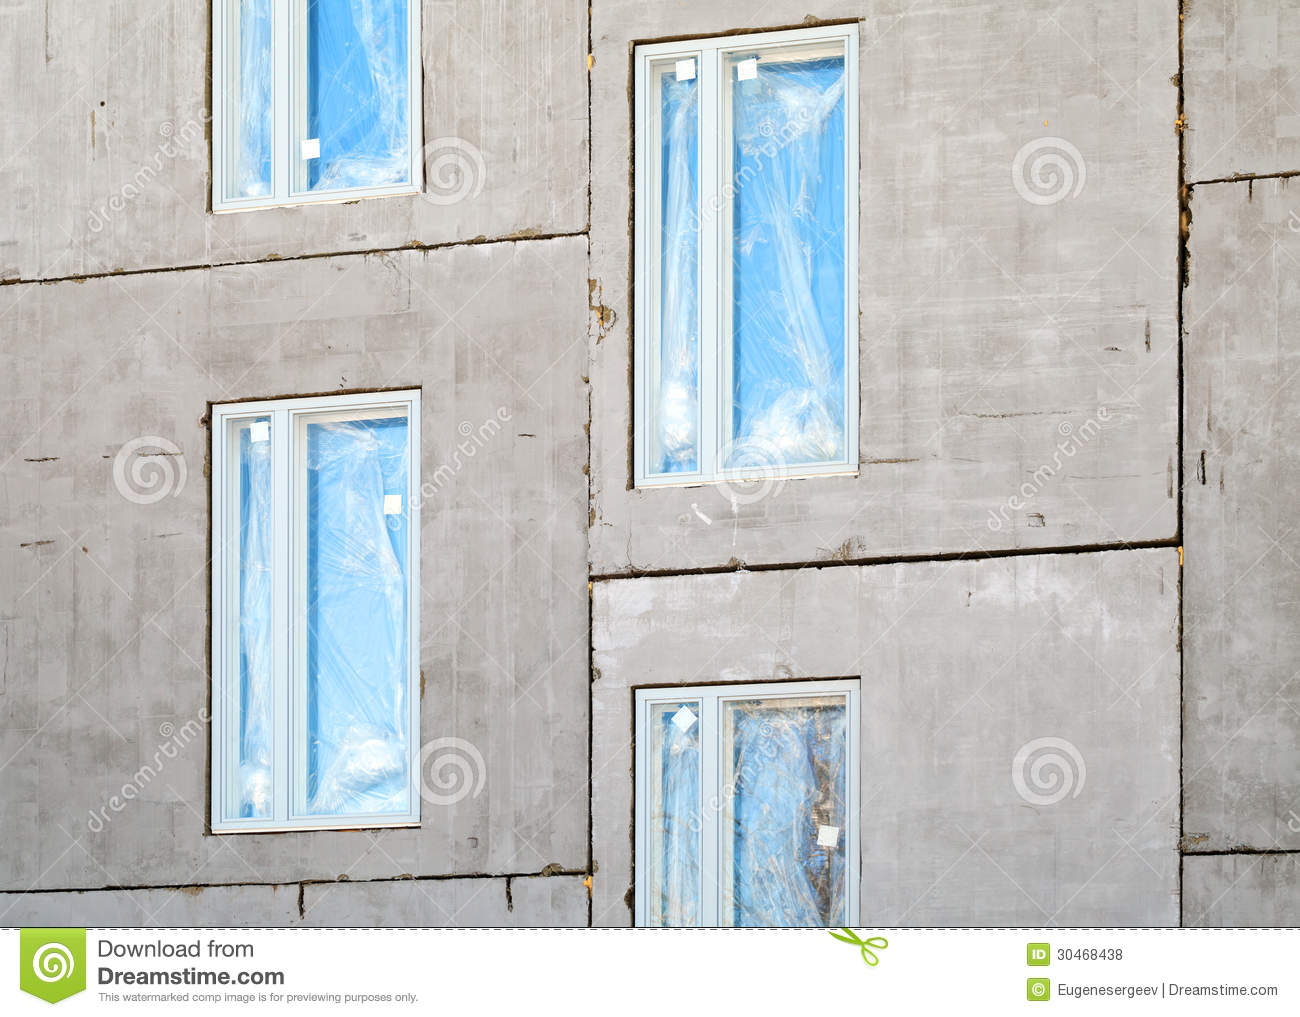 Concrete Building With Windows : Unfinished building concrete wall with windows stock photo